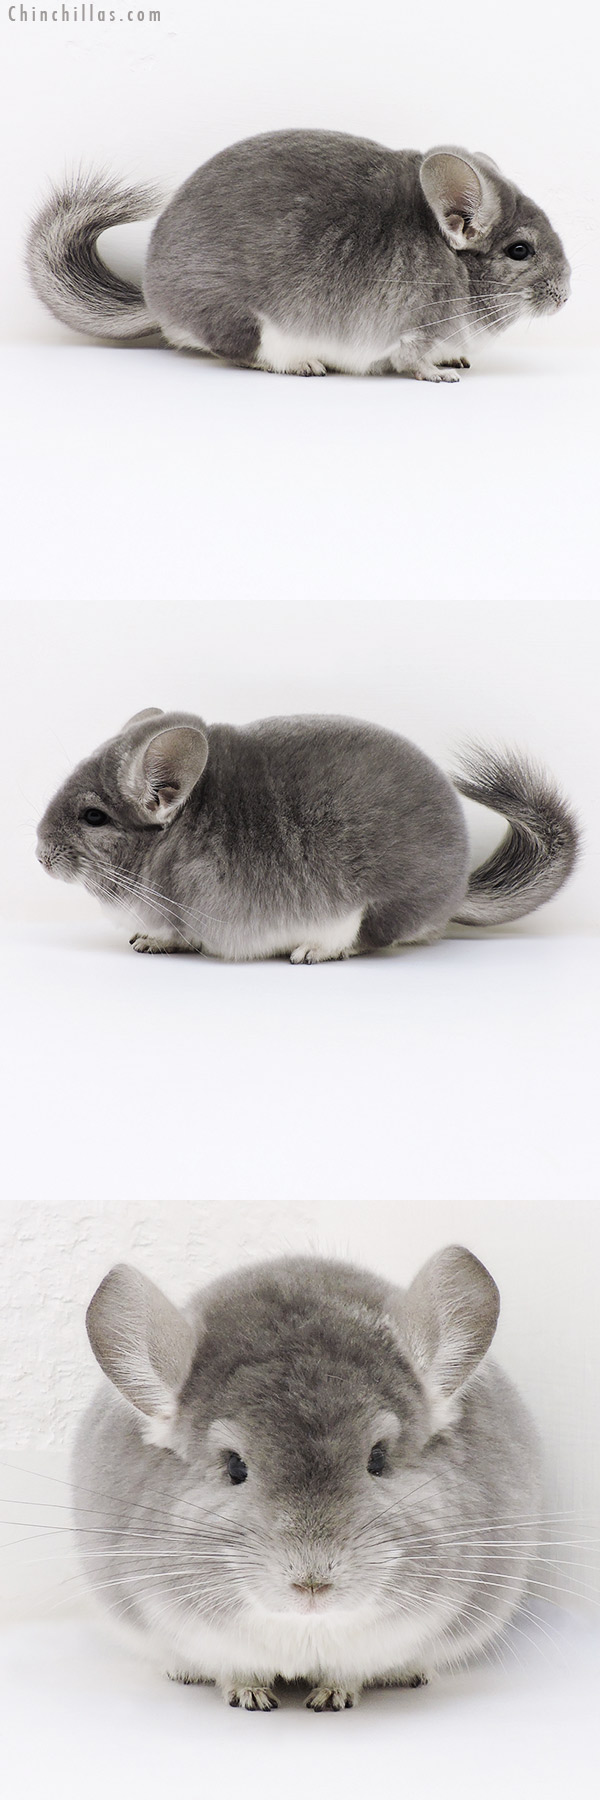 17065 Large Blocky Herd Improvement Quality Violet Male Chinchilla